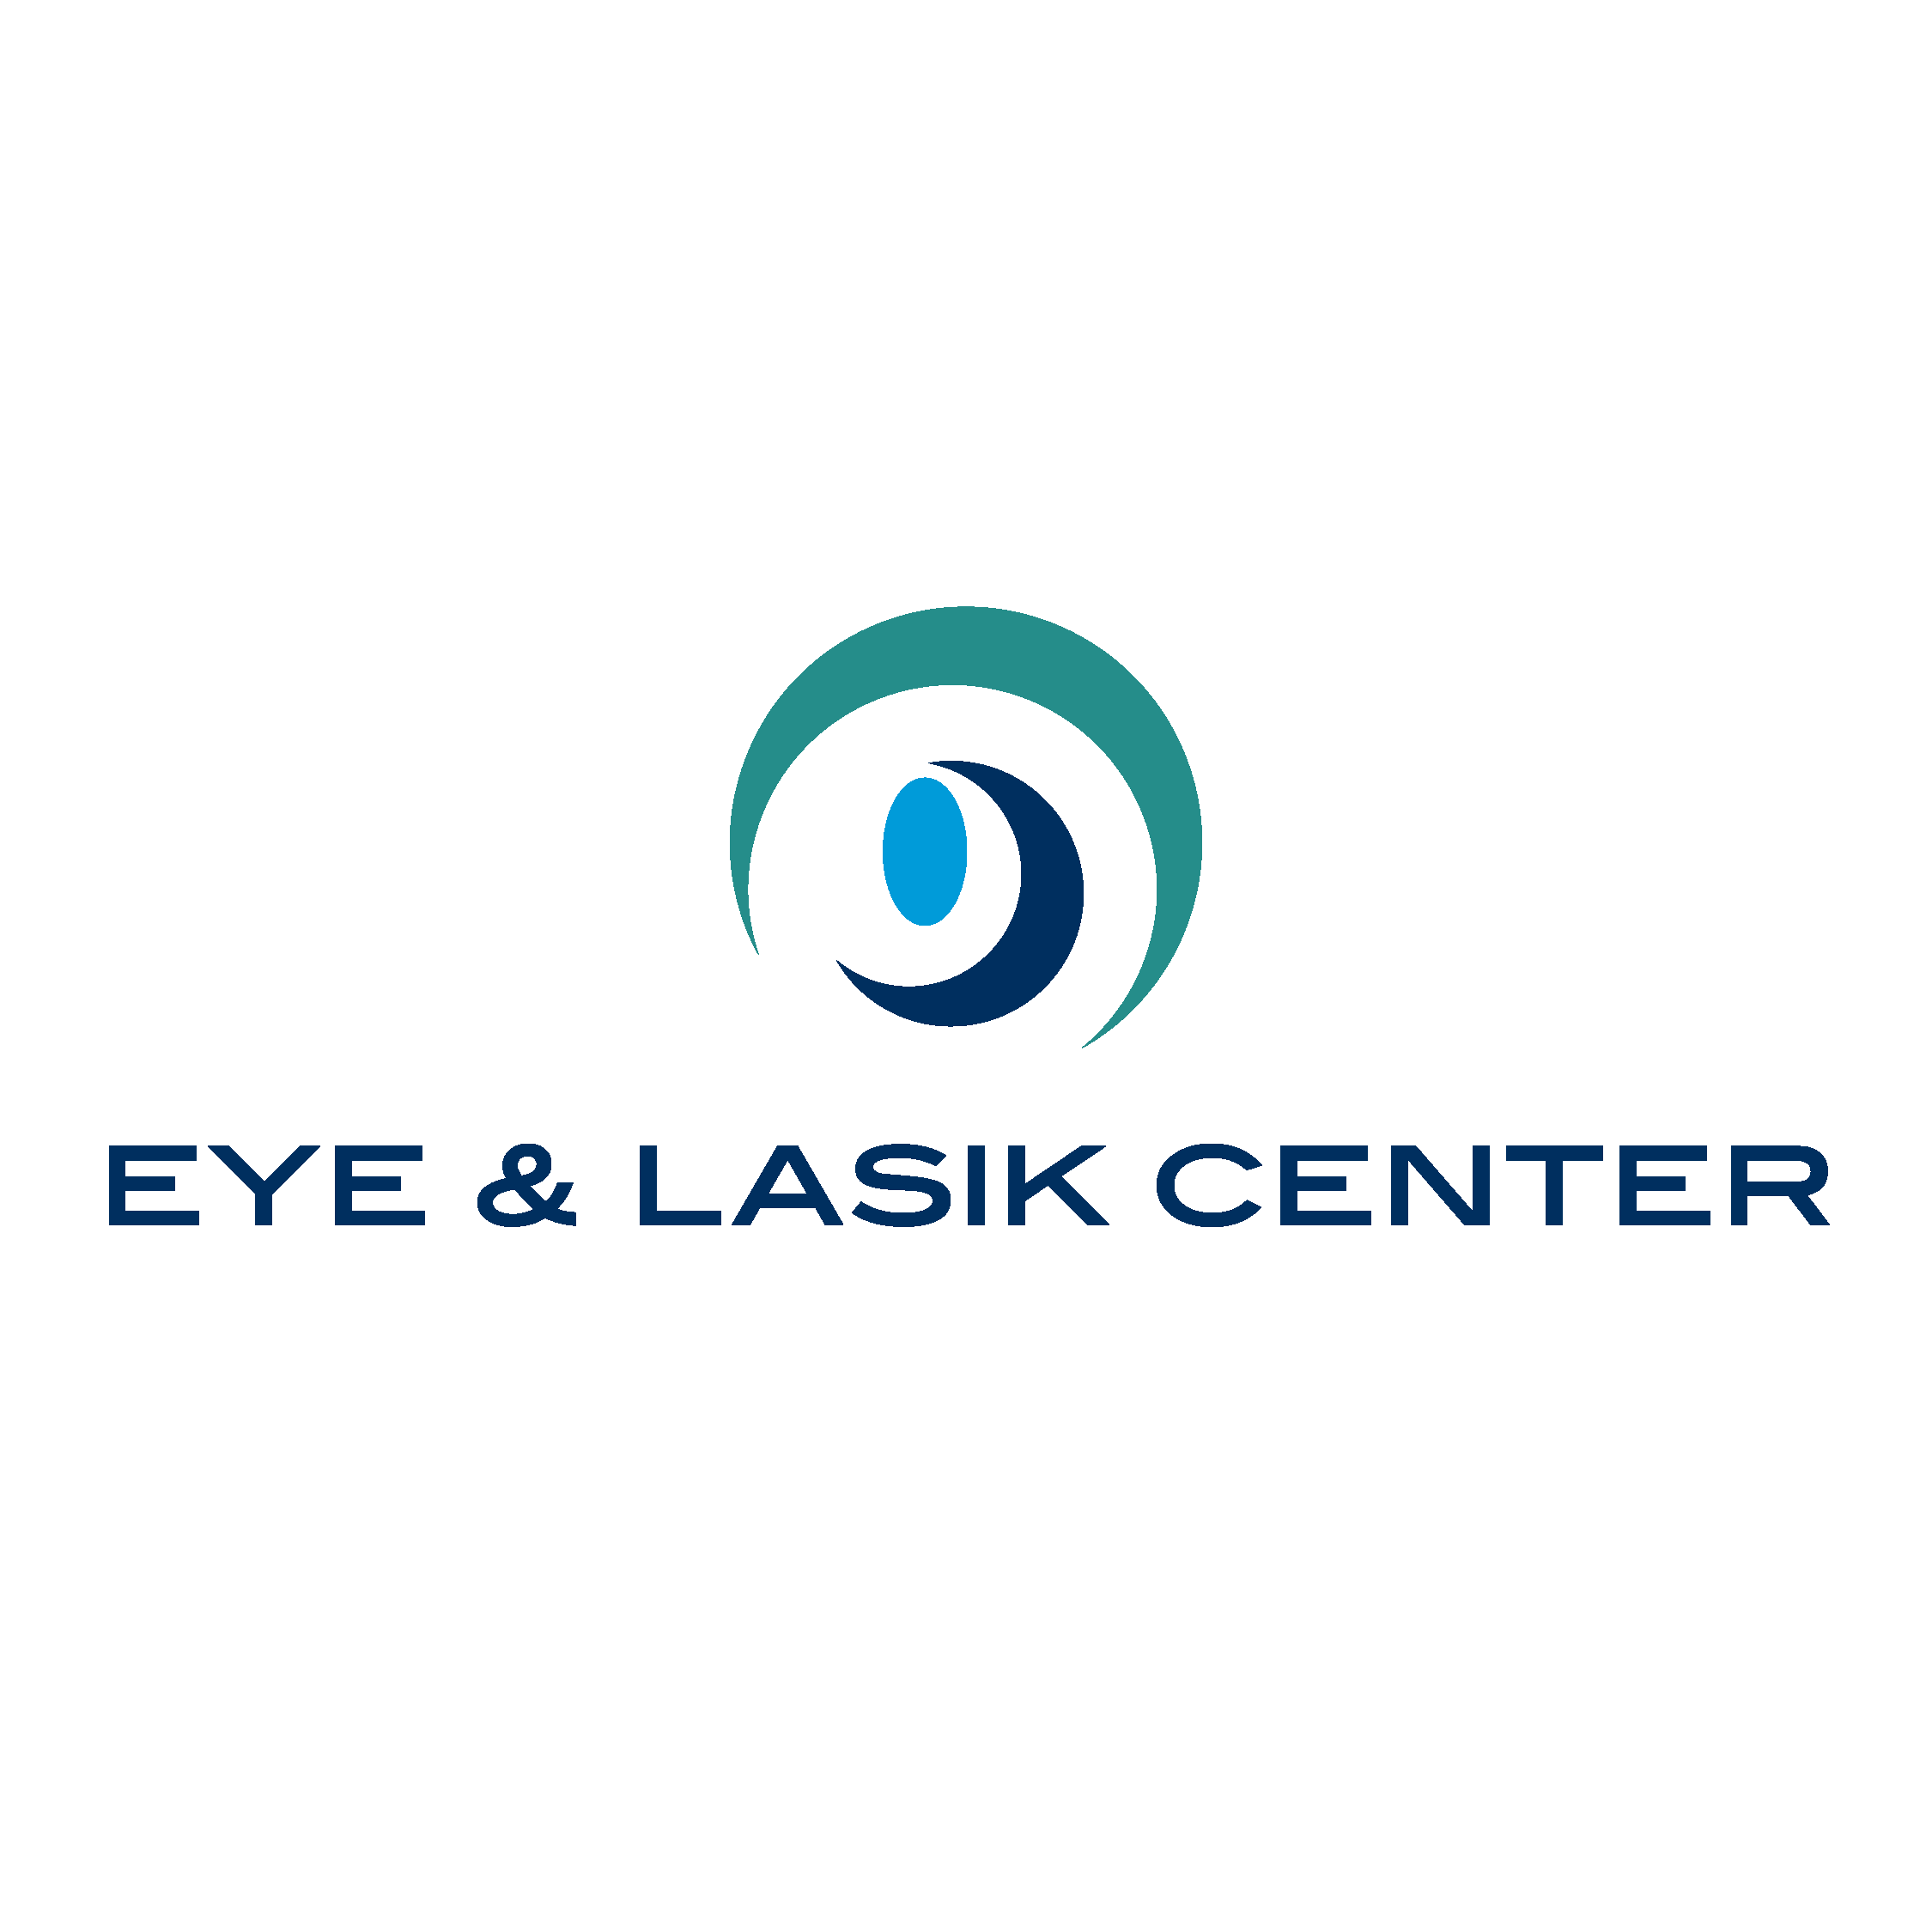 Eye & Lasik Center